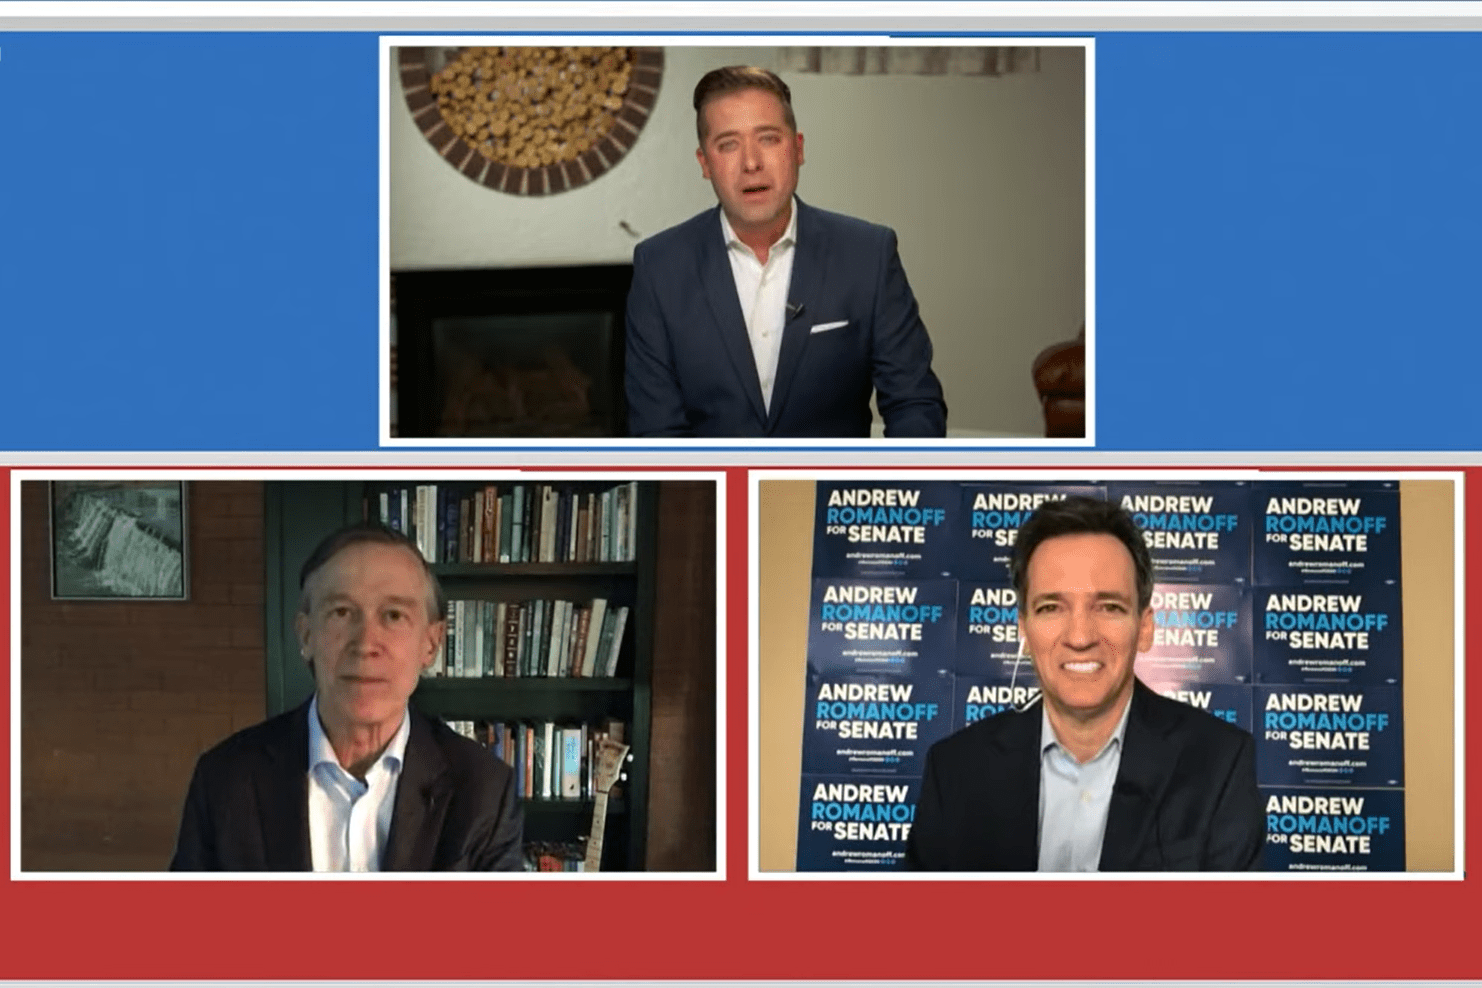 John Hickenlooper and Andrew Romanoff, Colorado's Democratic candidates for the U.S. Senate, participate in their first one-on-one debate before the primary election with 9 News anchor Kyle Clark.